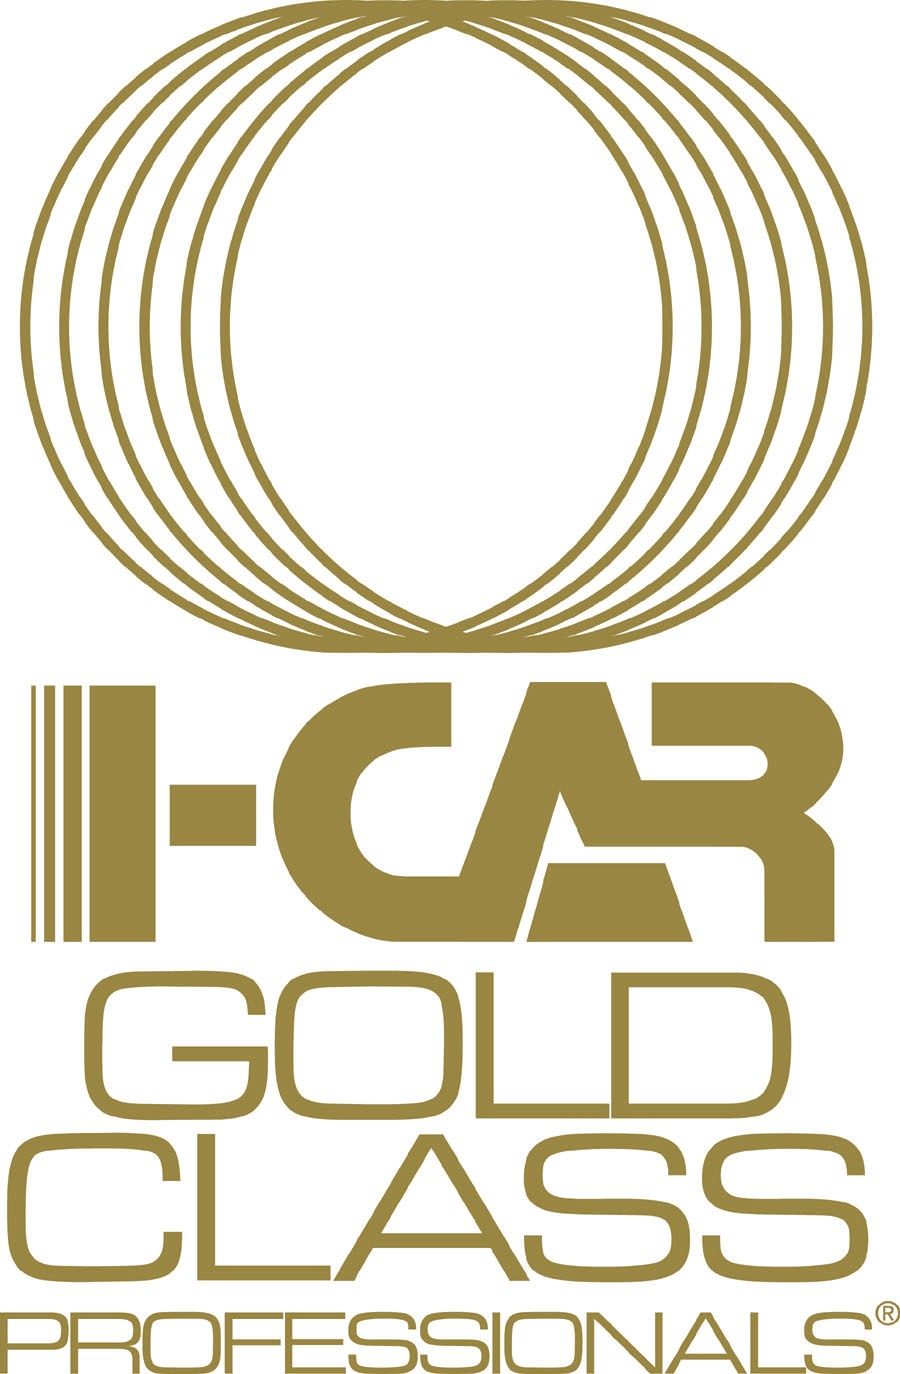 I-CAR Gold Class (gold).jpg